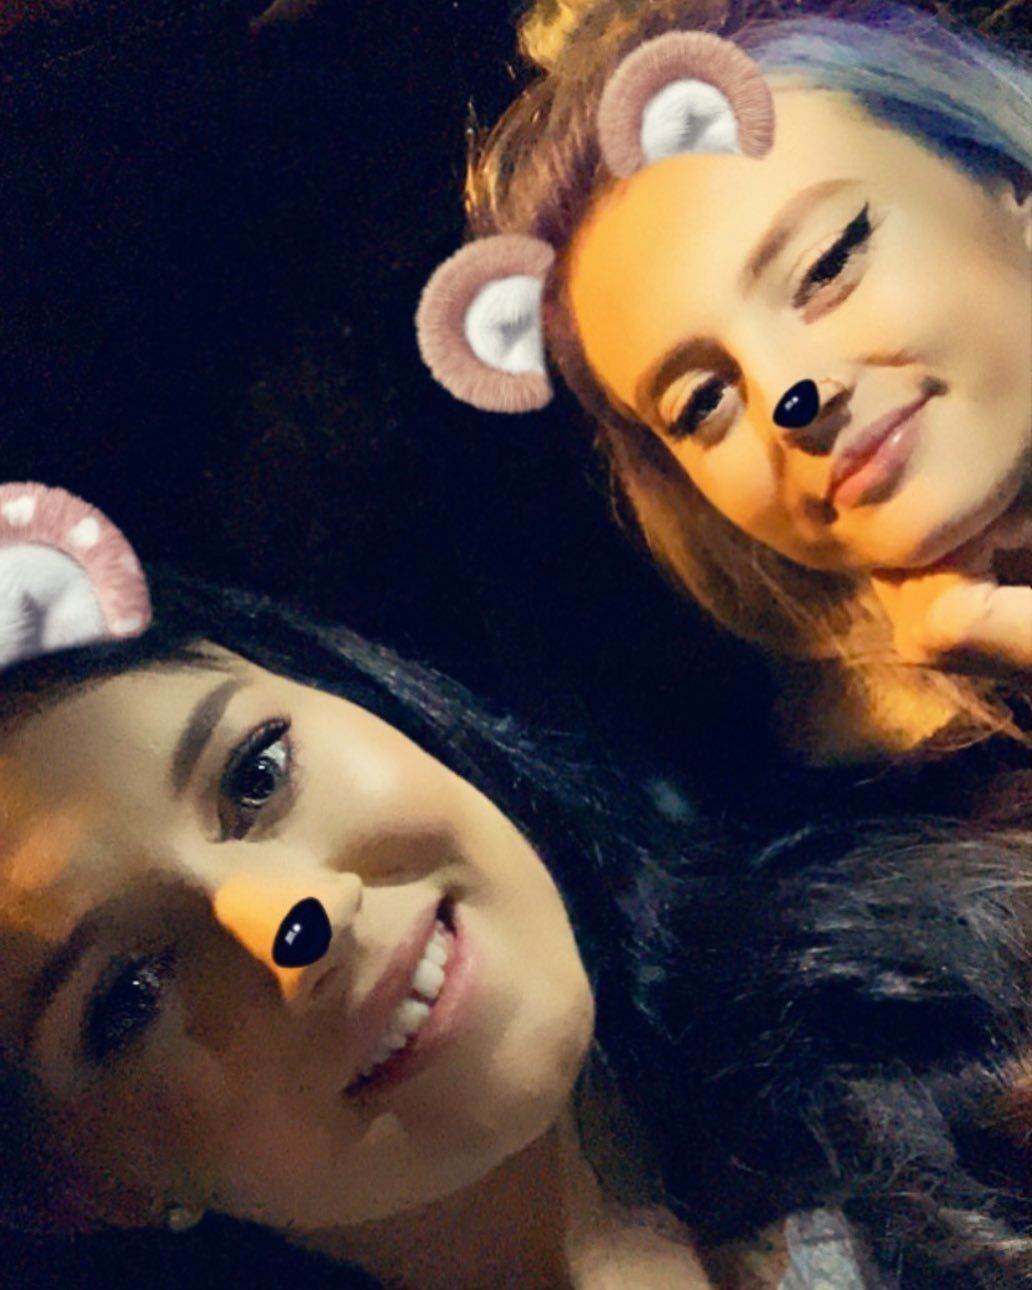 The amount of love I have for this girl is unreal! Don't know what I'd do with out her ❤️🥰 @xh4xdnx...